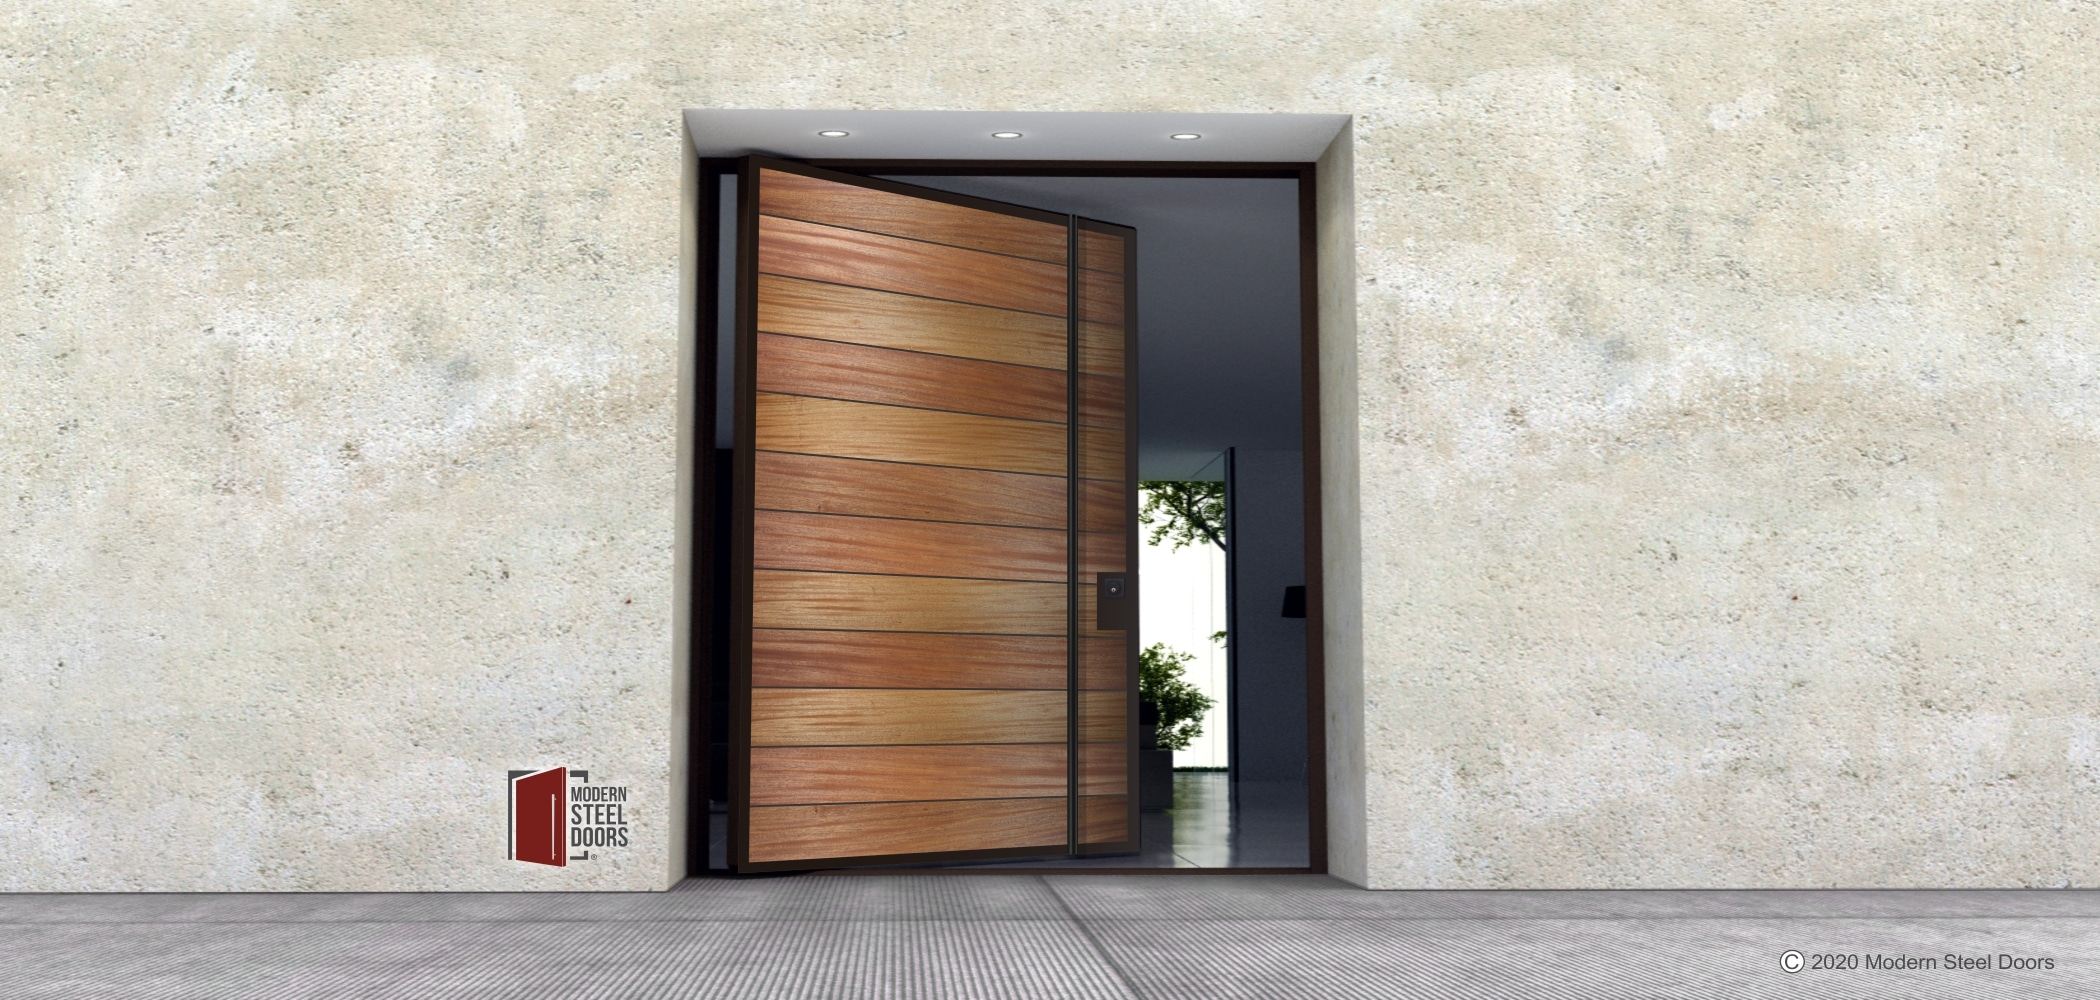 METAL FRAMED WOOD DOOR.